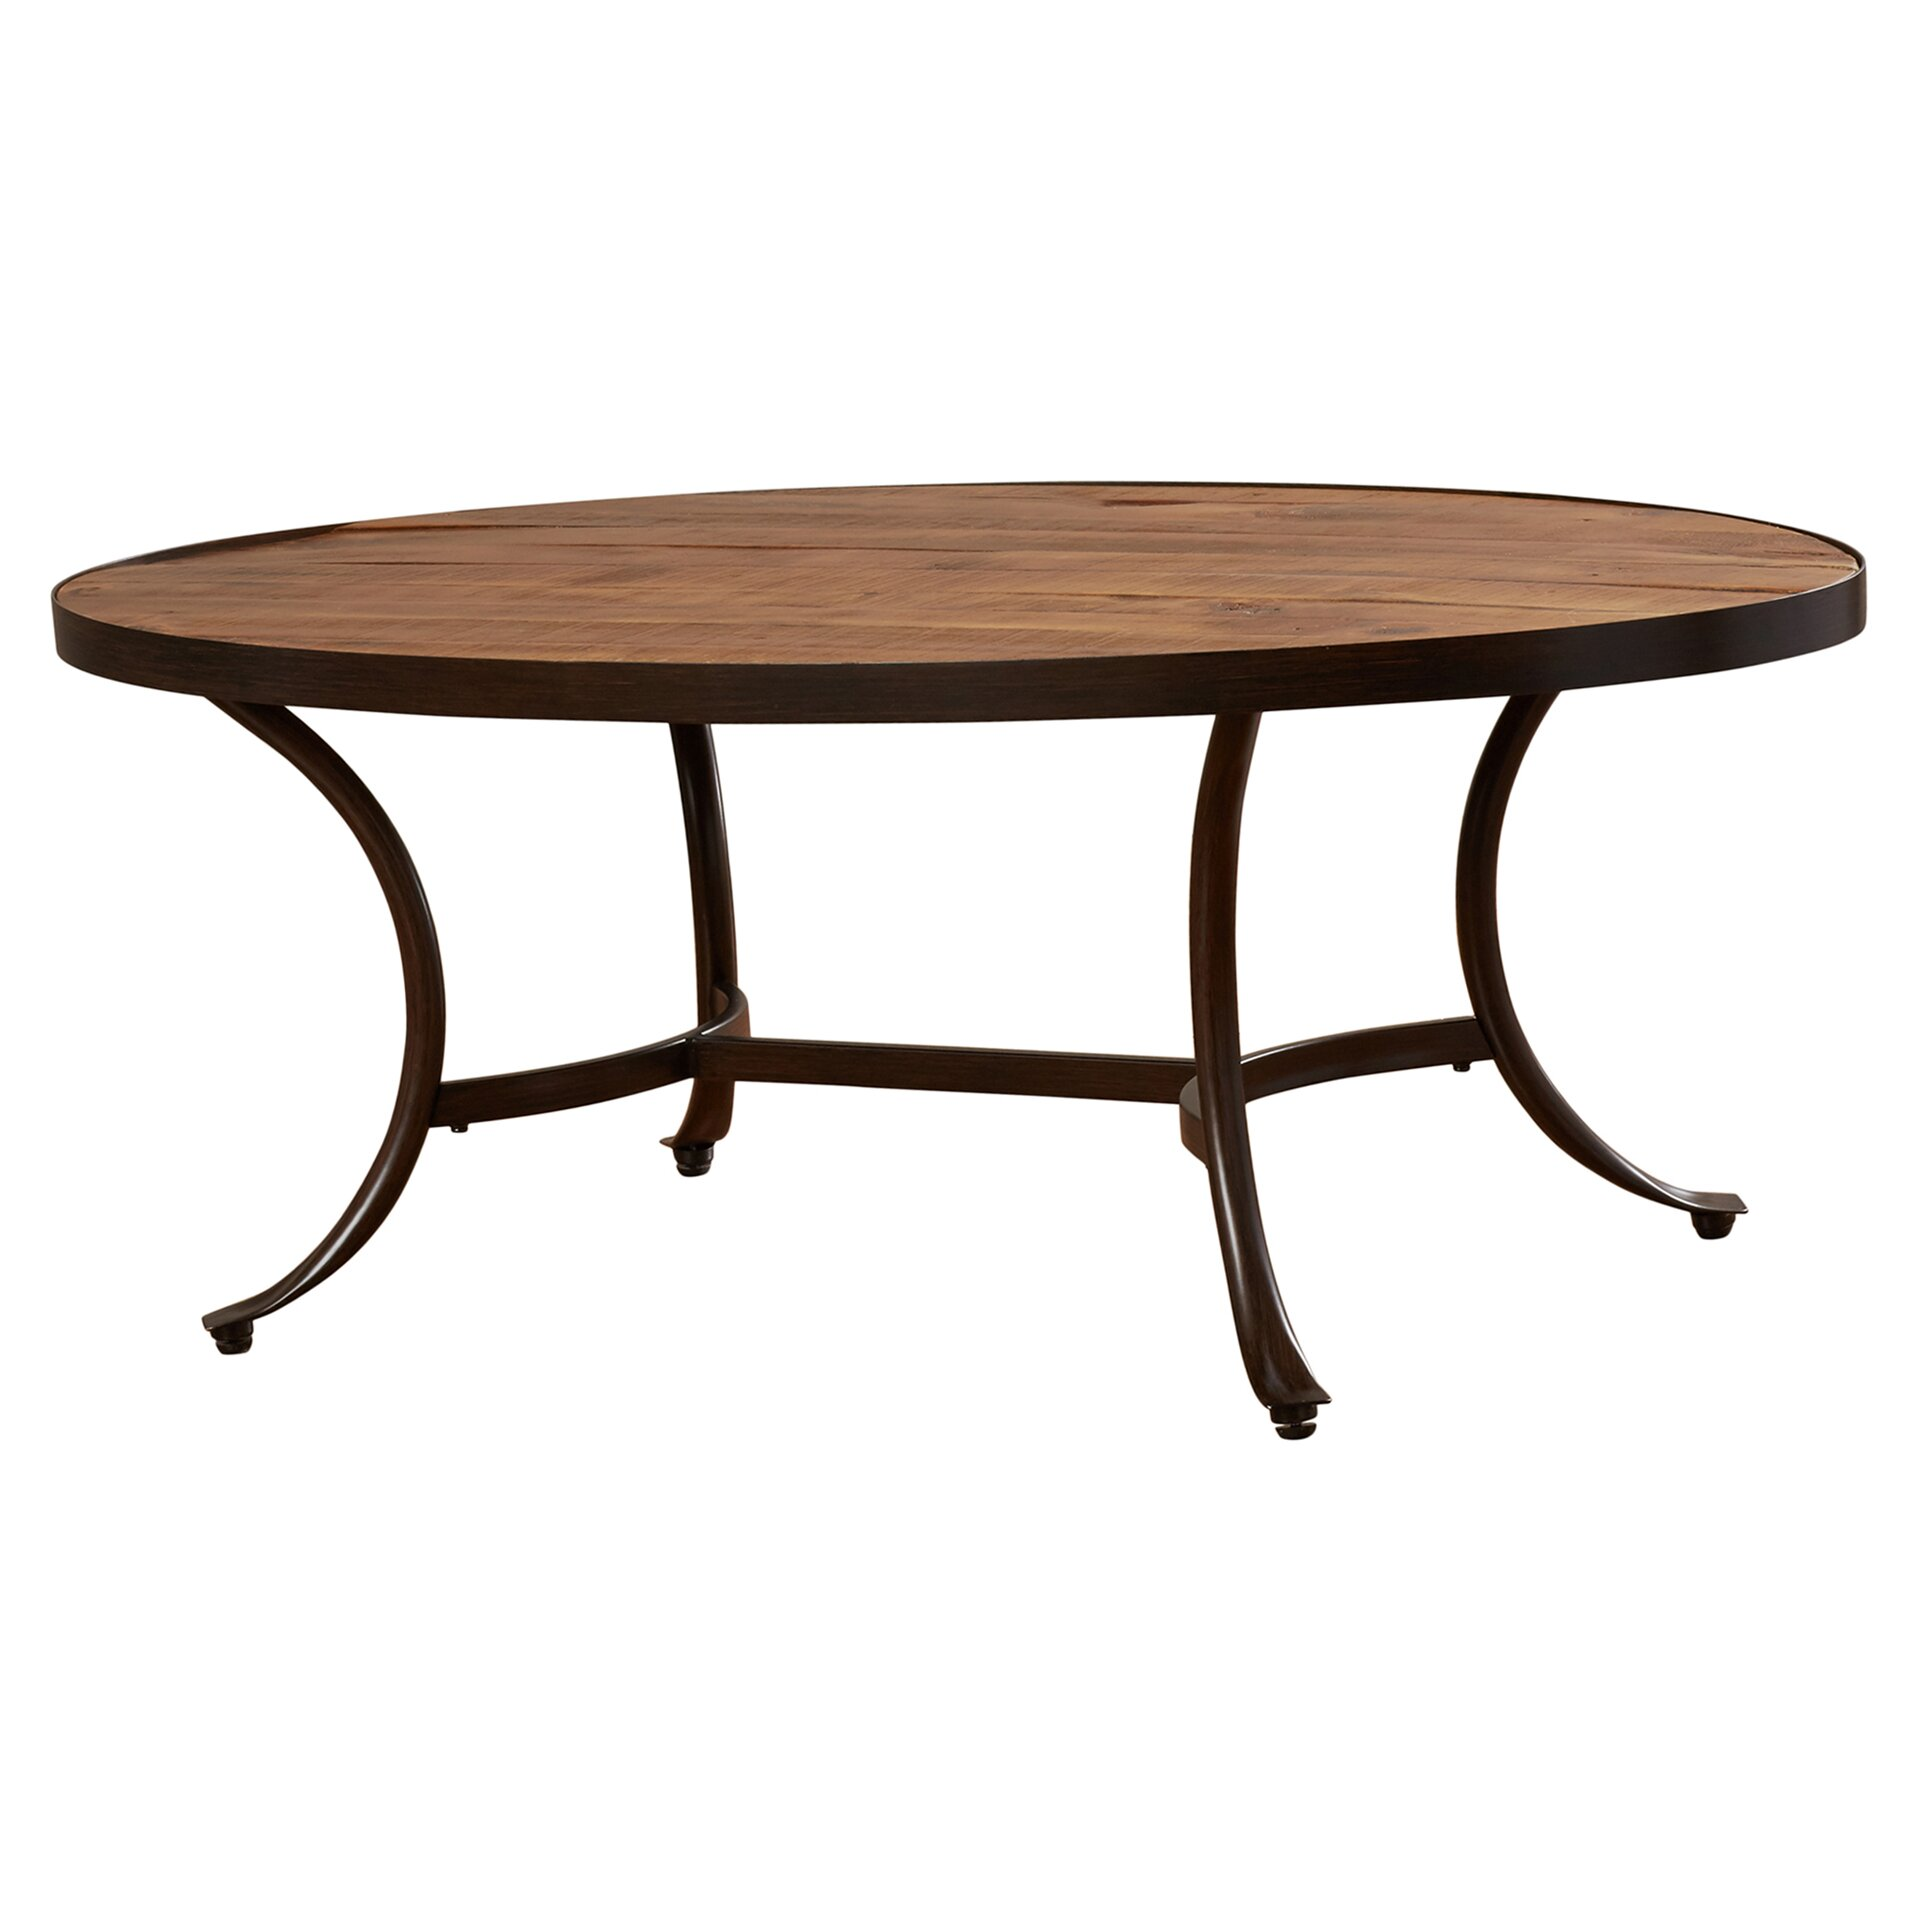 Living Room Furniture Oval Coffee Tables Mercury Row SKU MCRR1817